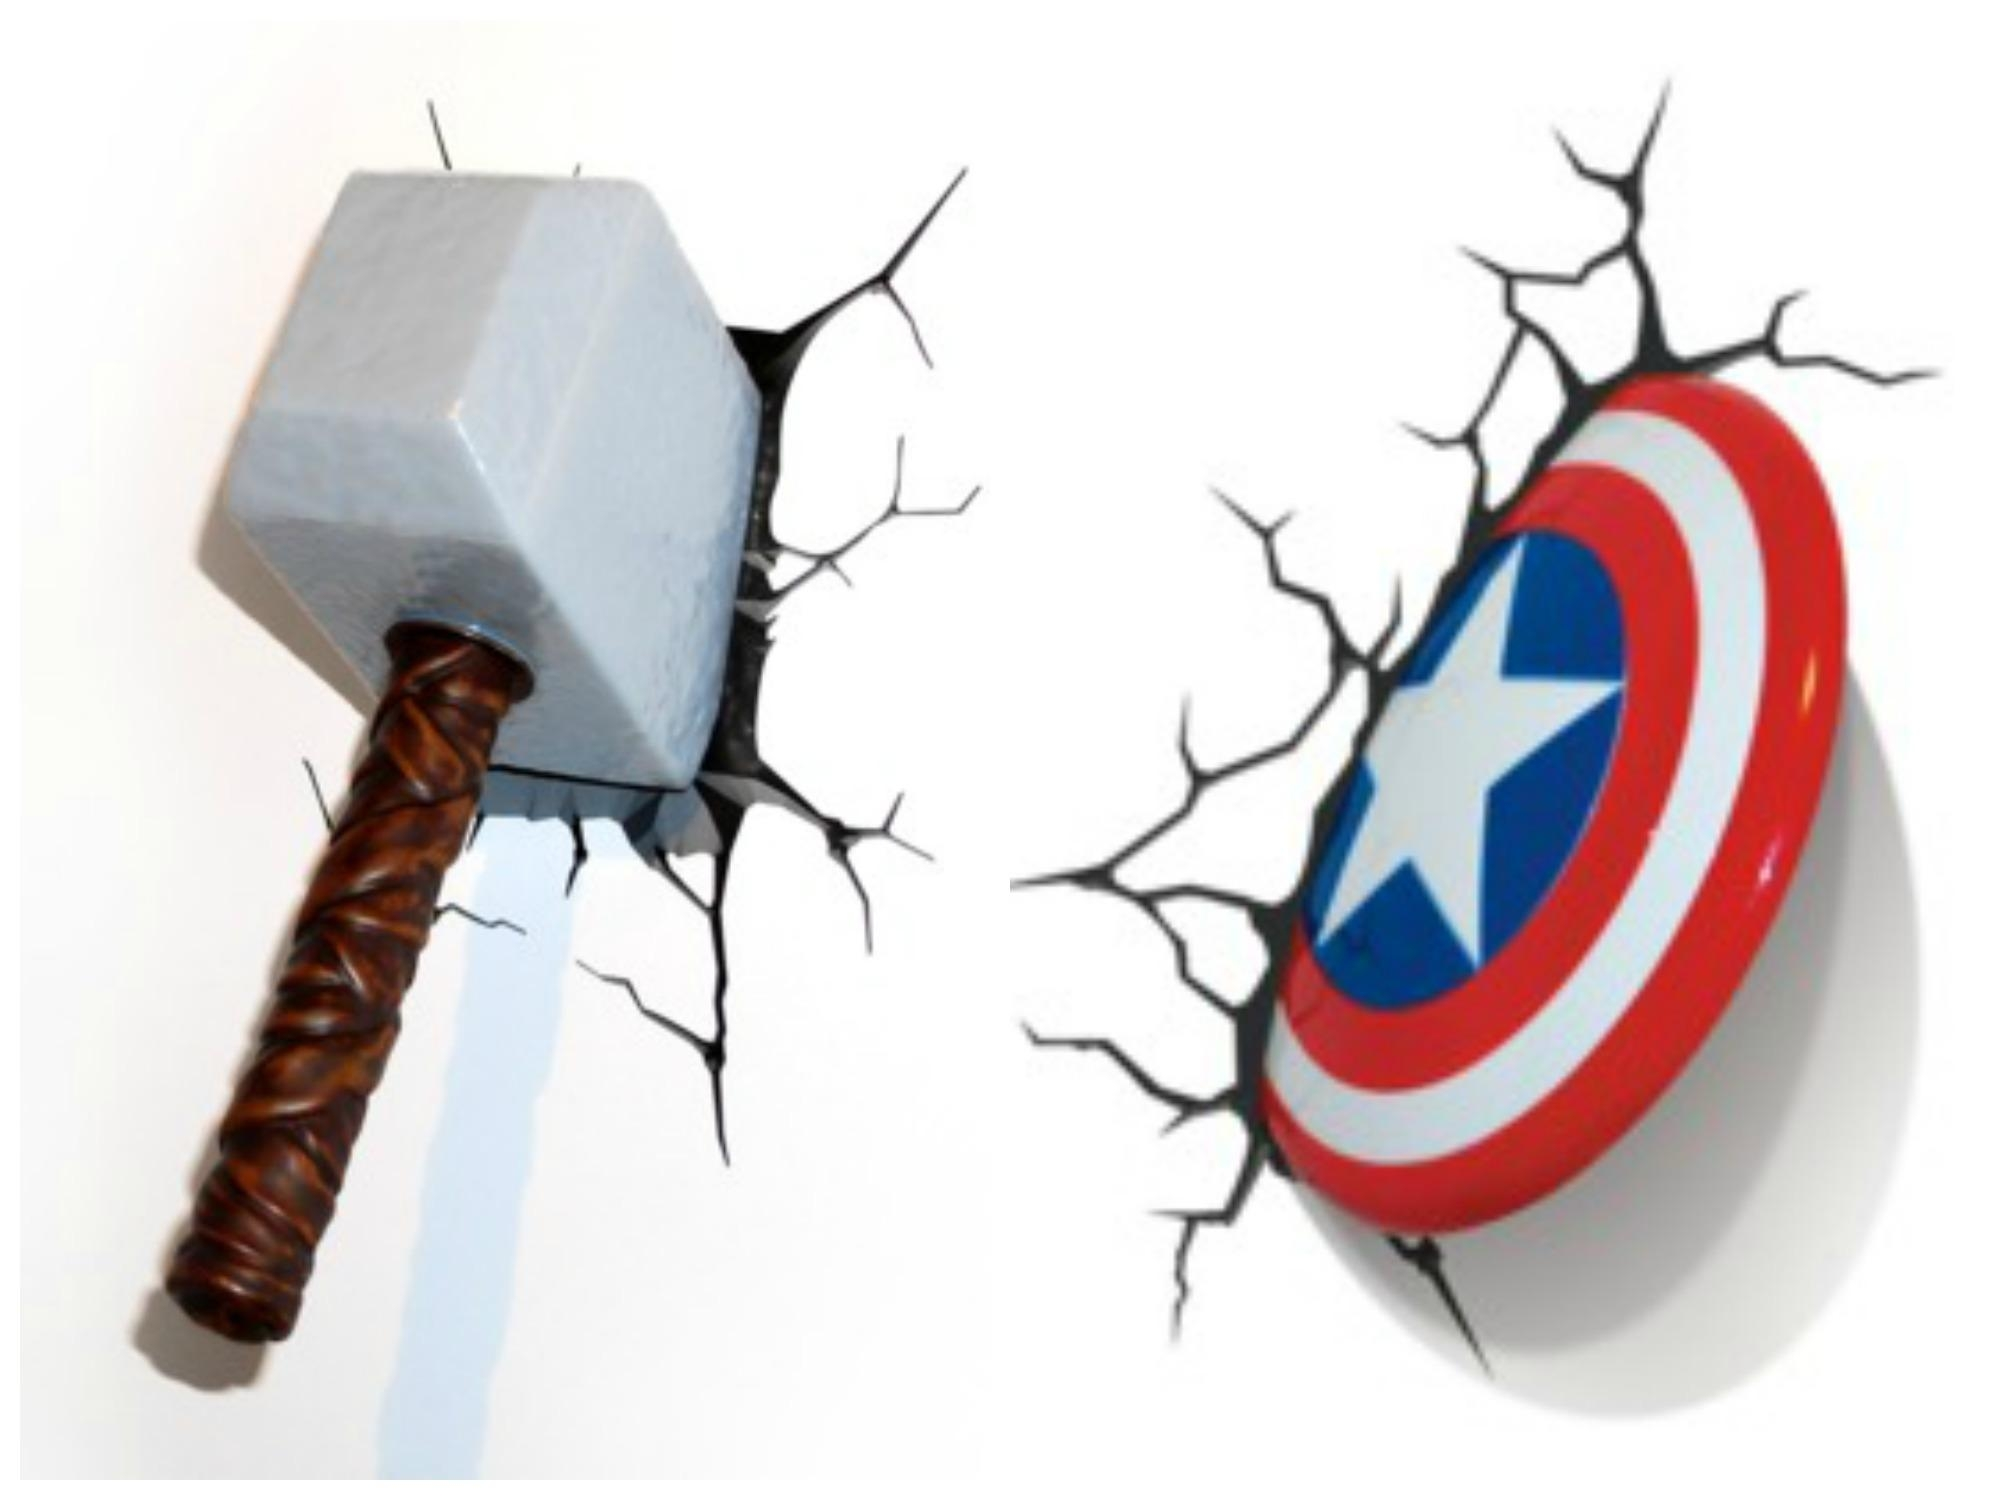 3D Wall Art Thor Hammer Night Light Uk | Wallartideas Pertaining To The Avengers 3D Wall Art Nightlight (Image 4 of 20)